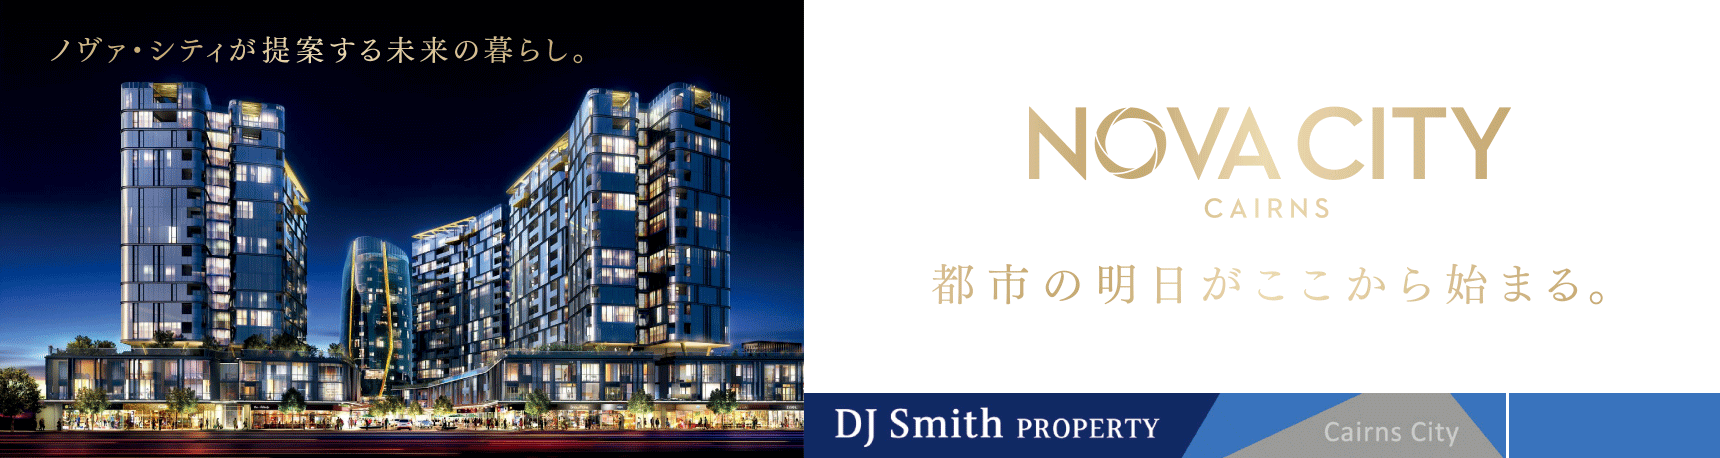 Nova City-DJ Smith PROPERTY